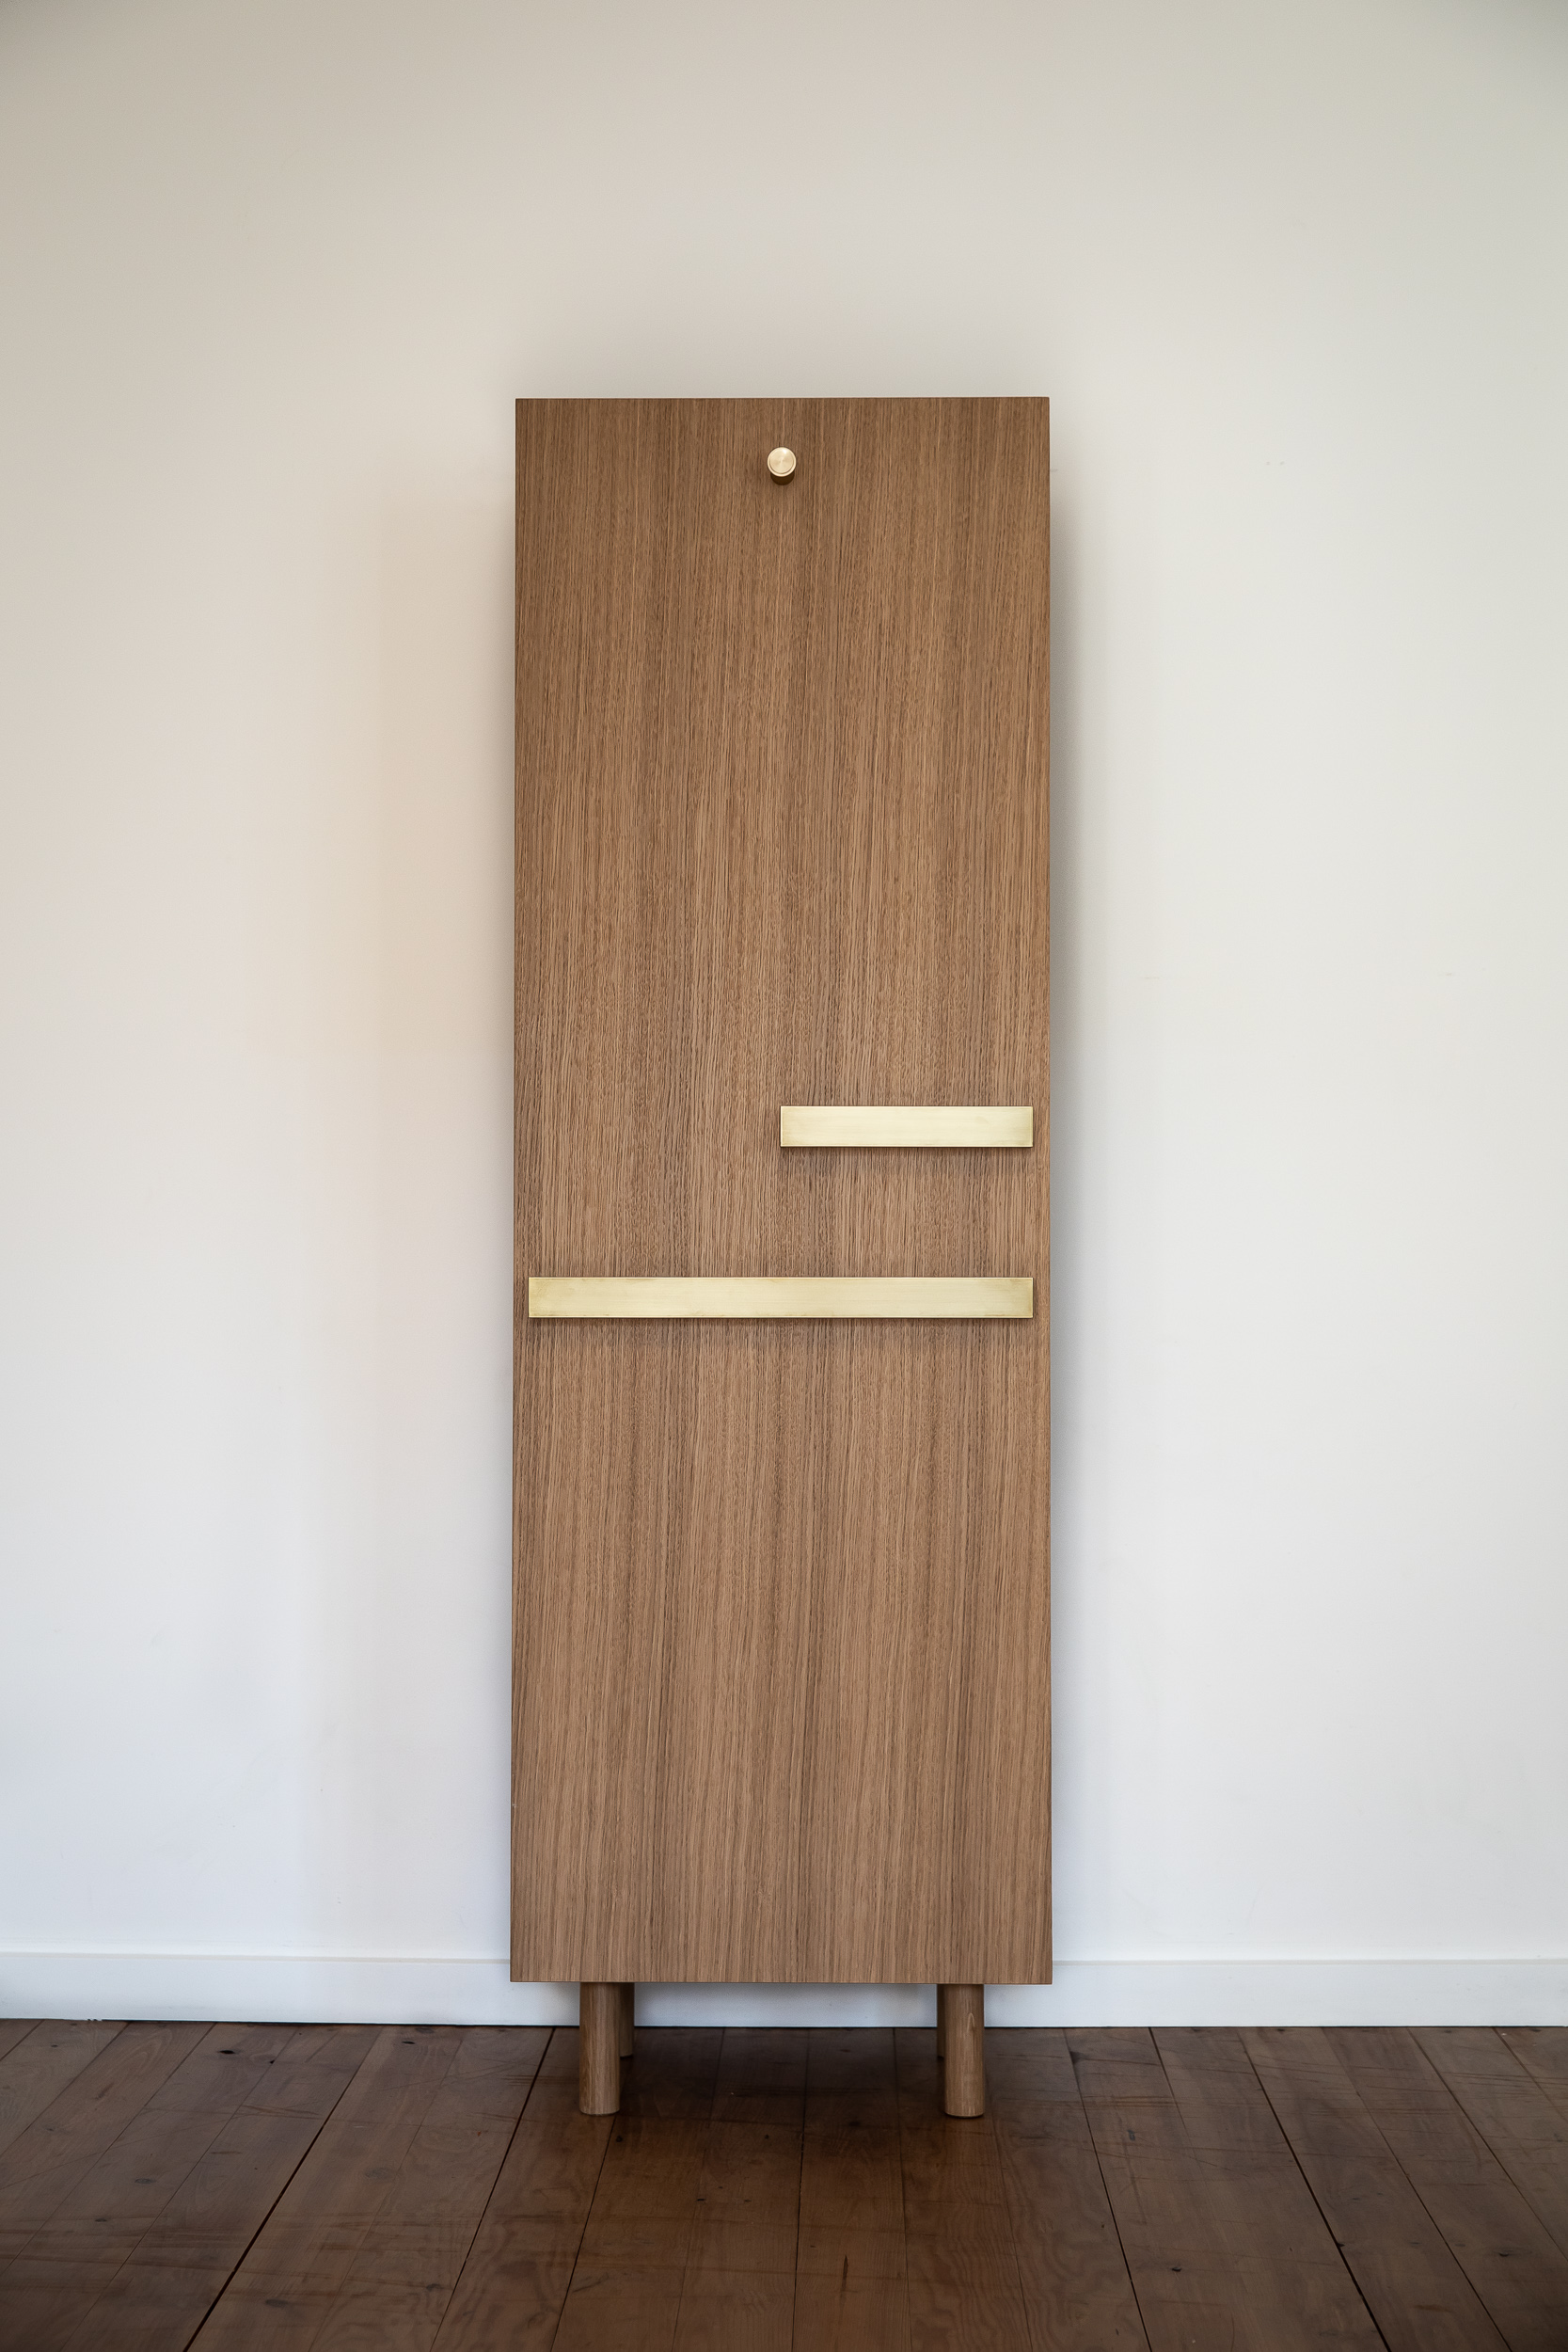 Charlotte Groult - Paroi is a monobloc storage unit system, allowing to hang, store and deposit. Shallow, this column is tacked on several sides: a vacuum pocket and a coat hook in front, two large drawers and a closet accessible on the side. Brass